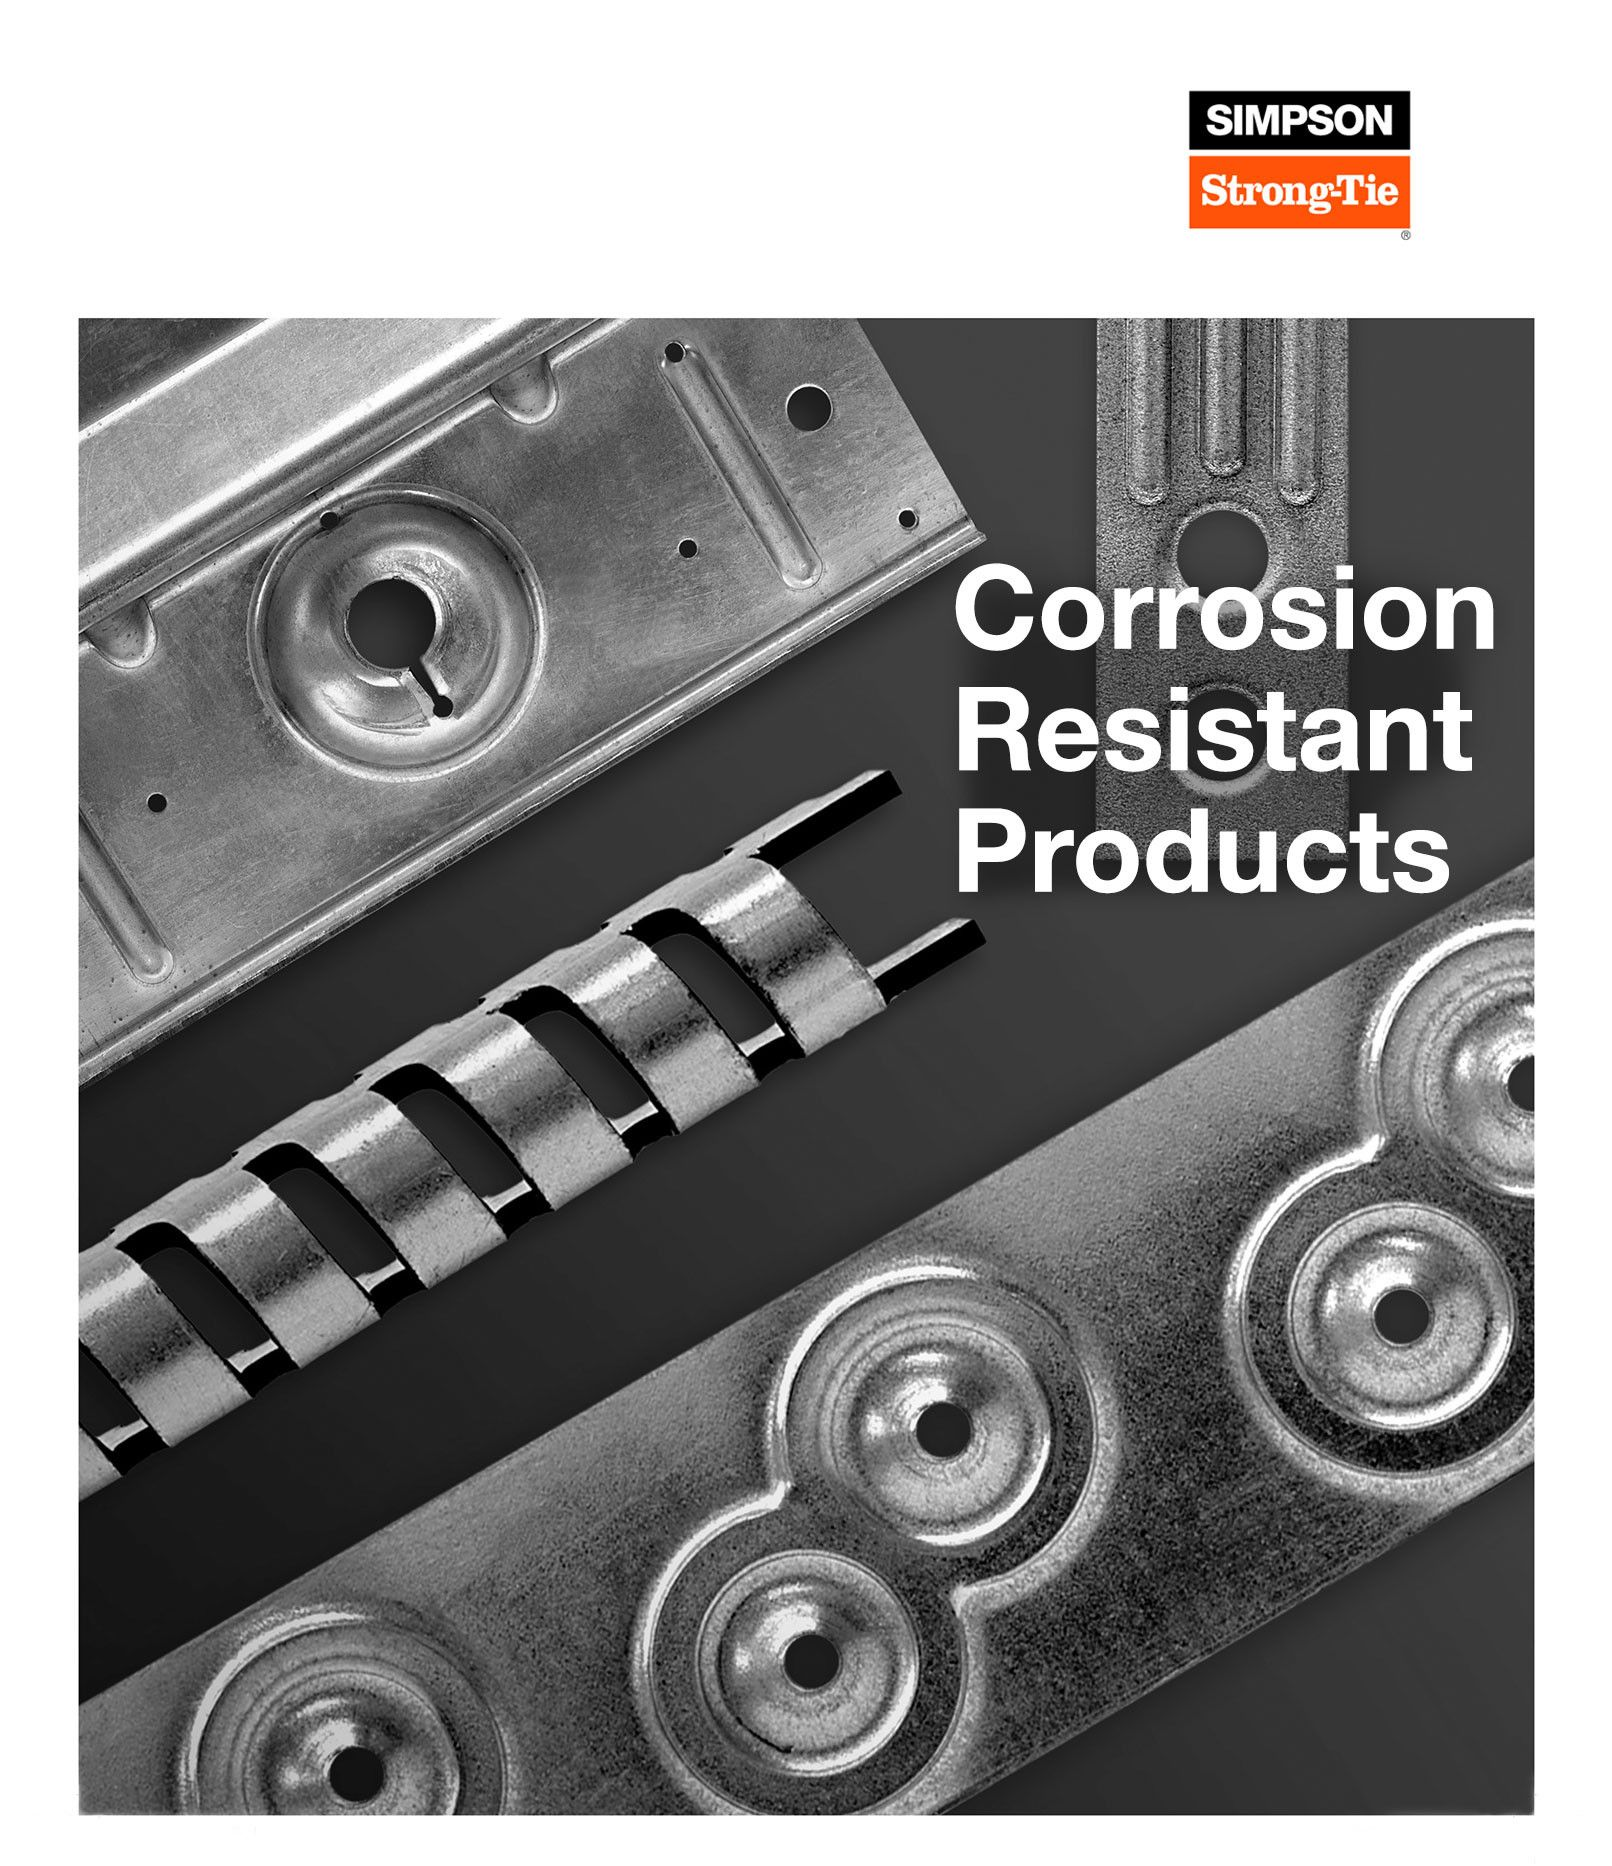 Corrosion Resistant Products